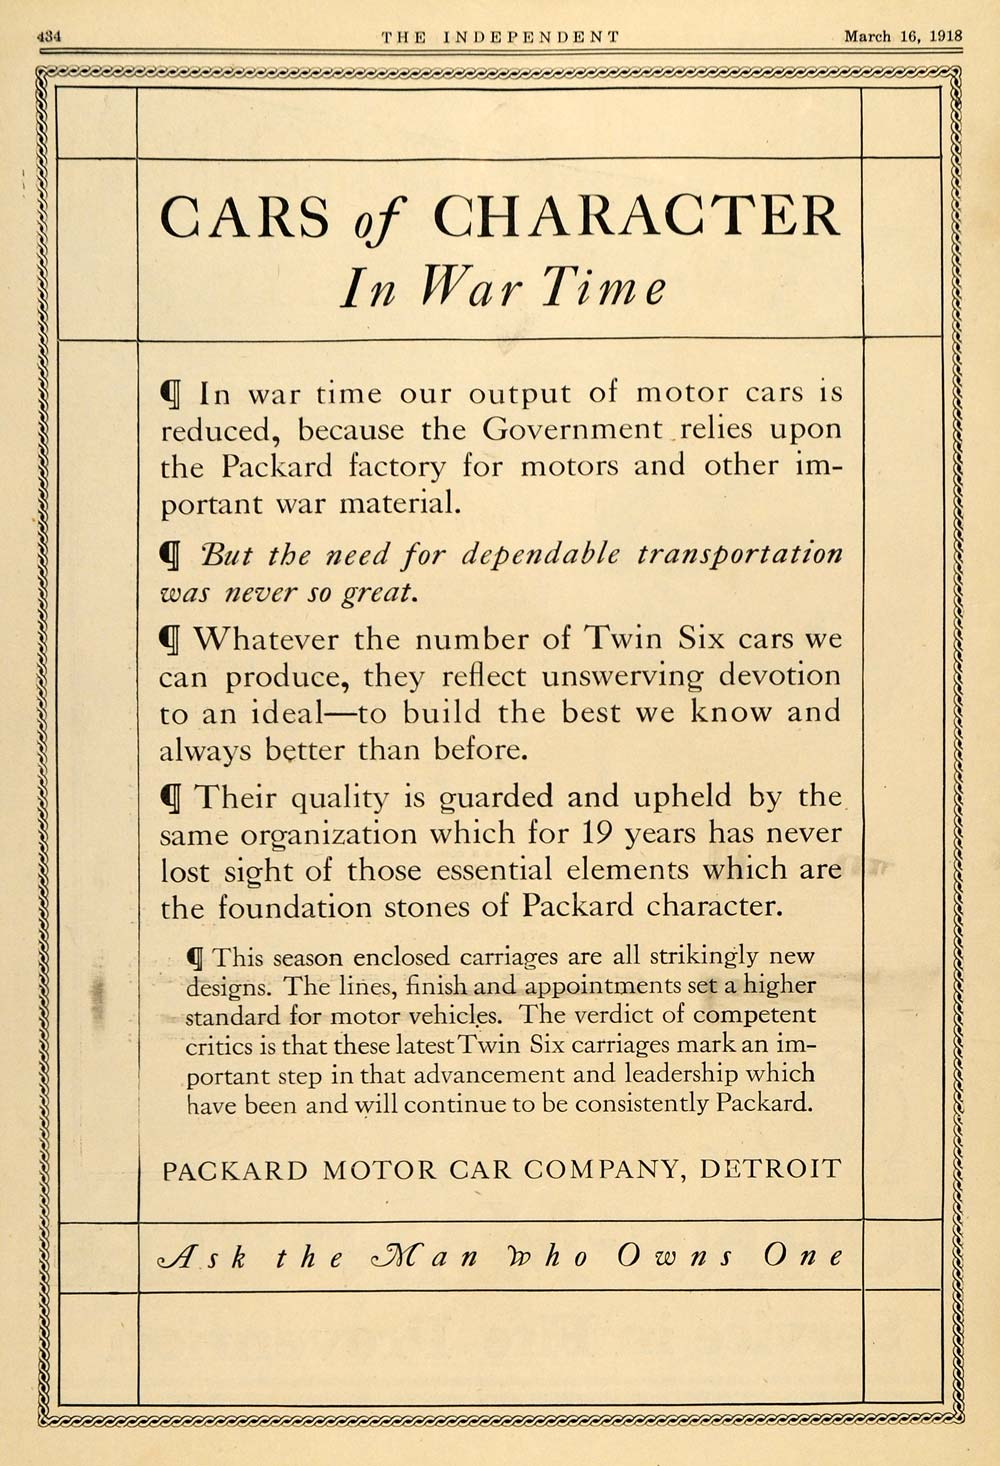 1918 Ad Packard Twin 6 Cars of Character War Time WWI - ORIGINAL TIN3